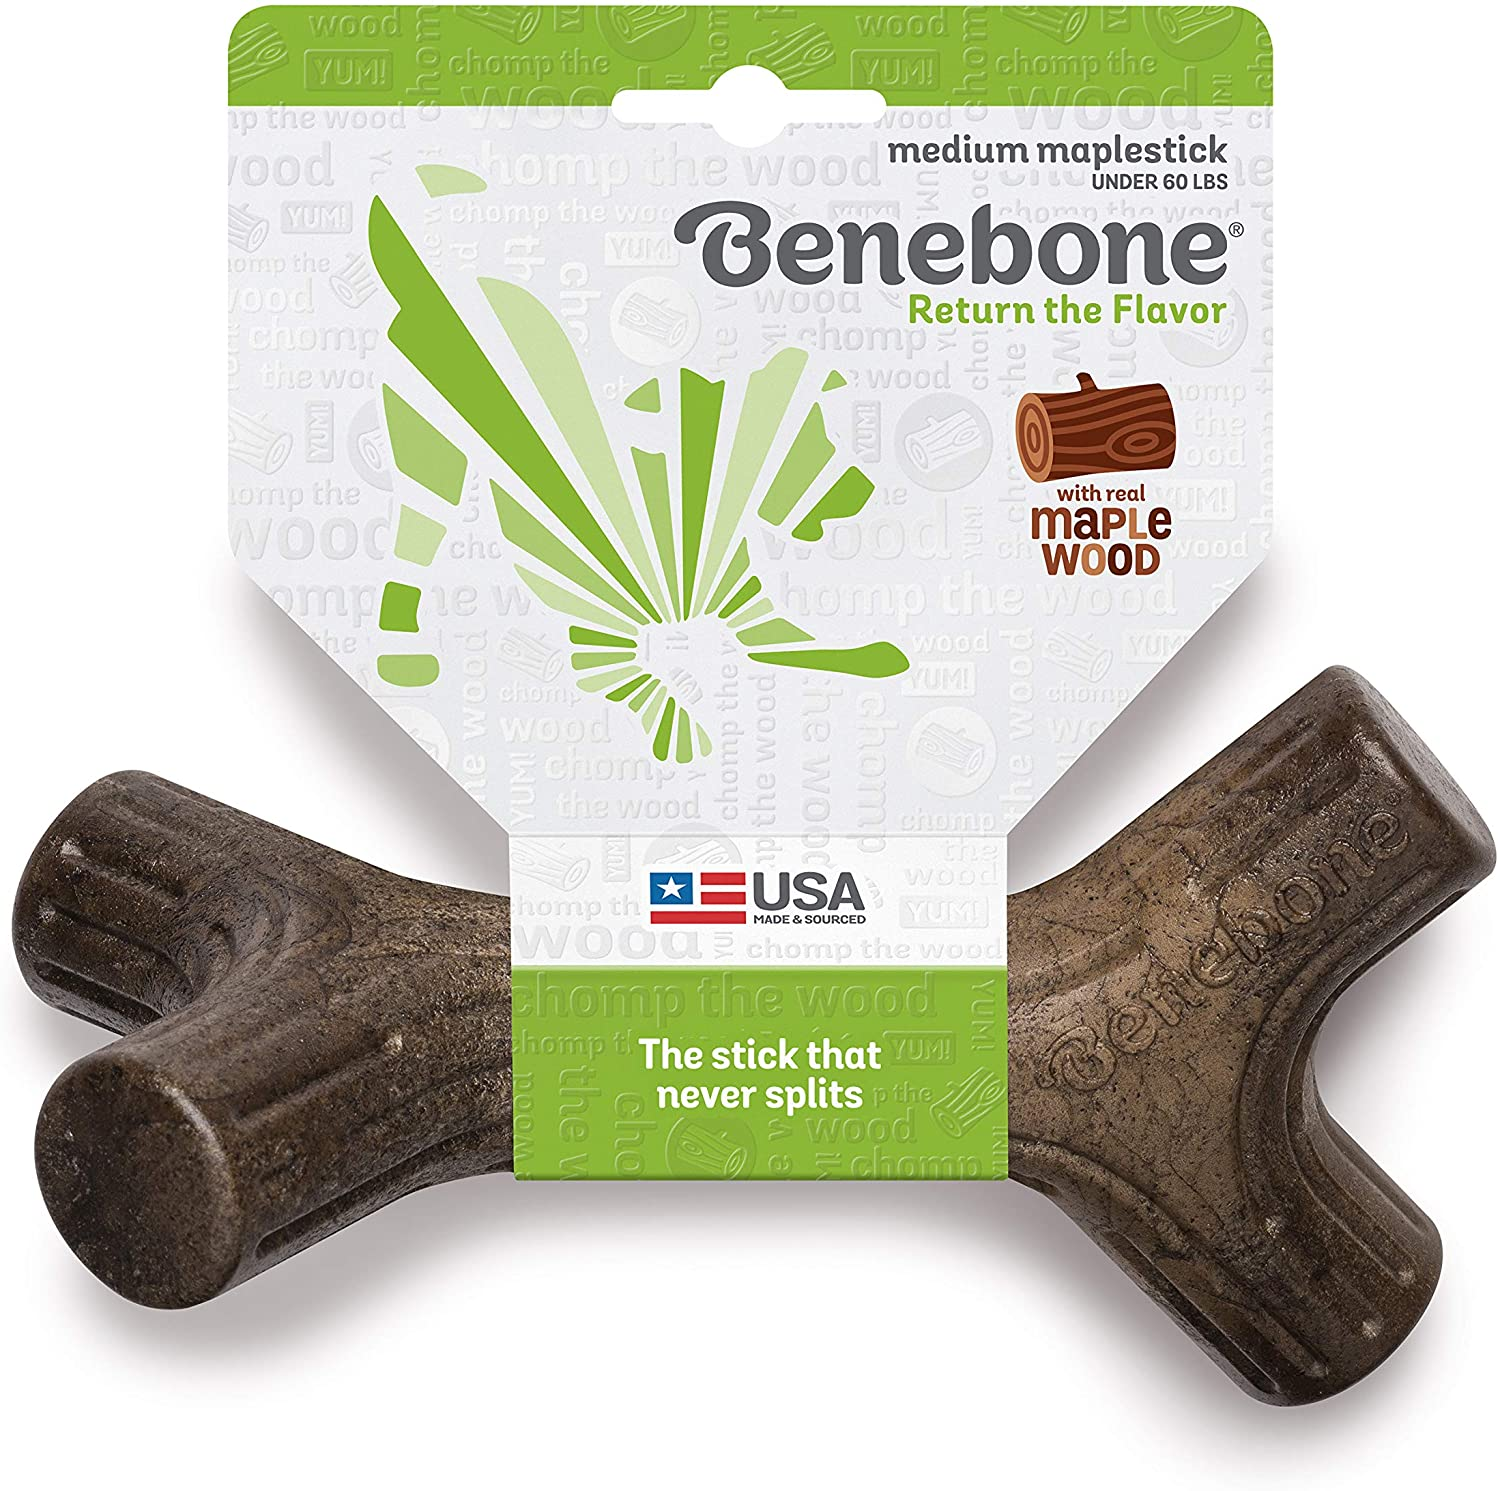 Benebone Stick - Maple